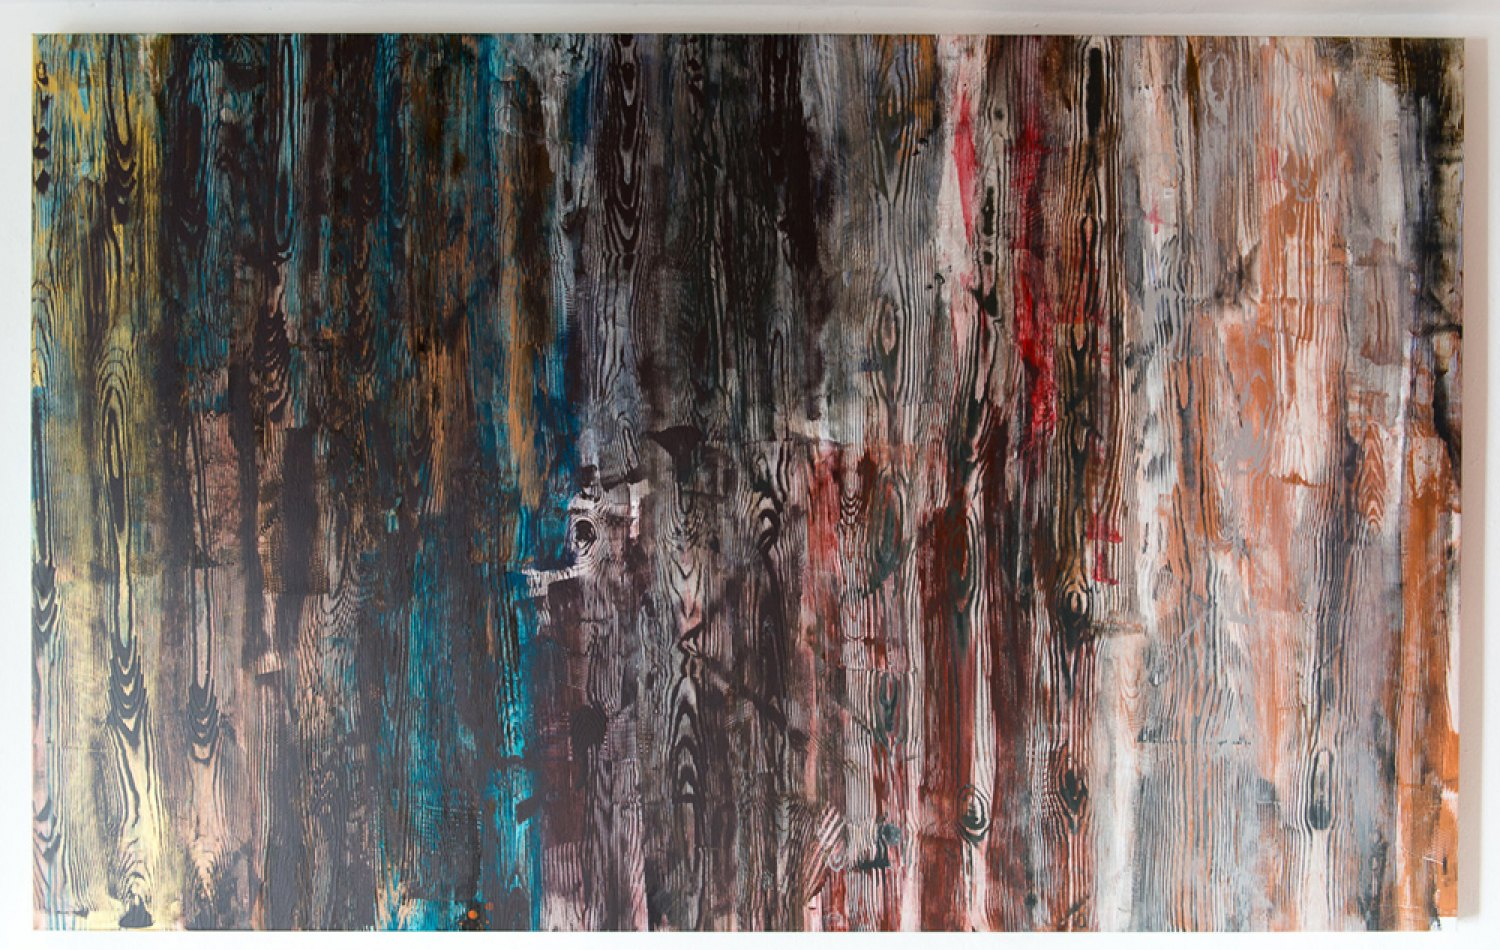 Reena Spaulings Holzweg 5, 2013 Acrylic on canvas, 150 × 240 cm